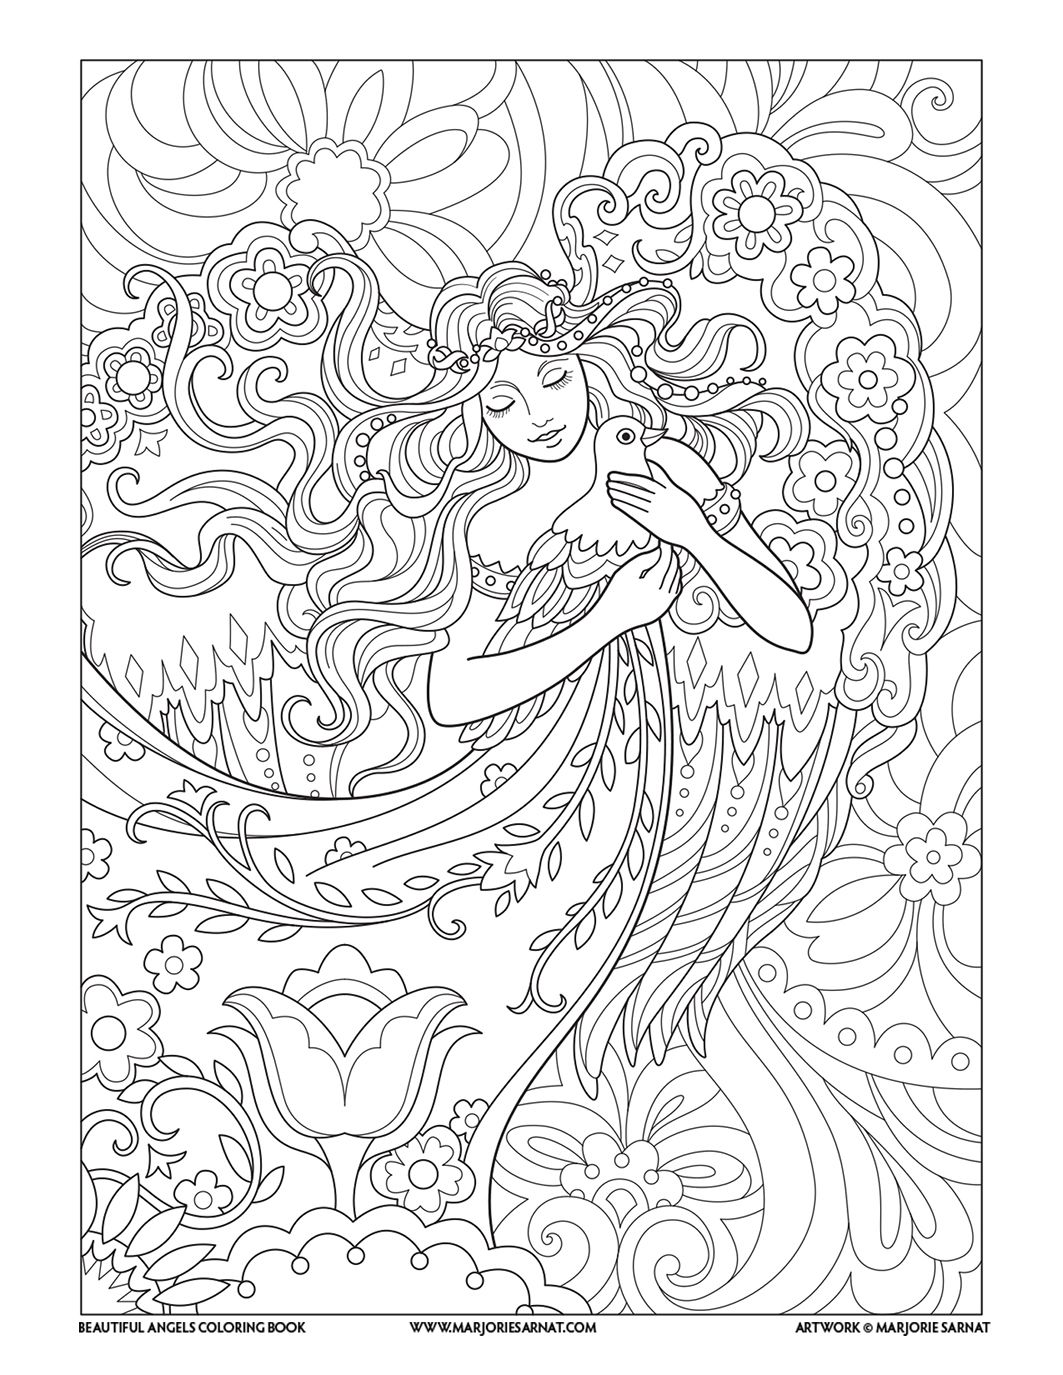 Angel With Dove Beautiful Angels Coloring Book Marjorie Sarnat Angel Coloring Pages Mermaid Coloring Pages Fairy Coloring Pages